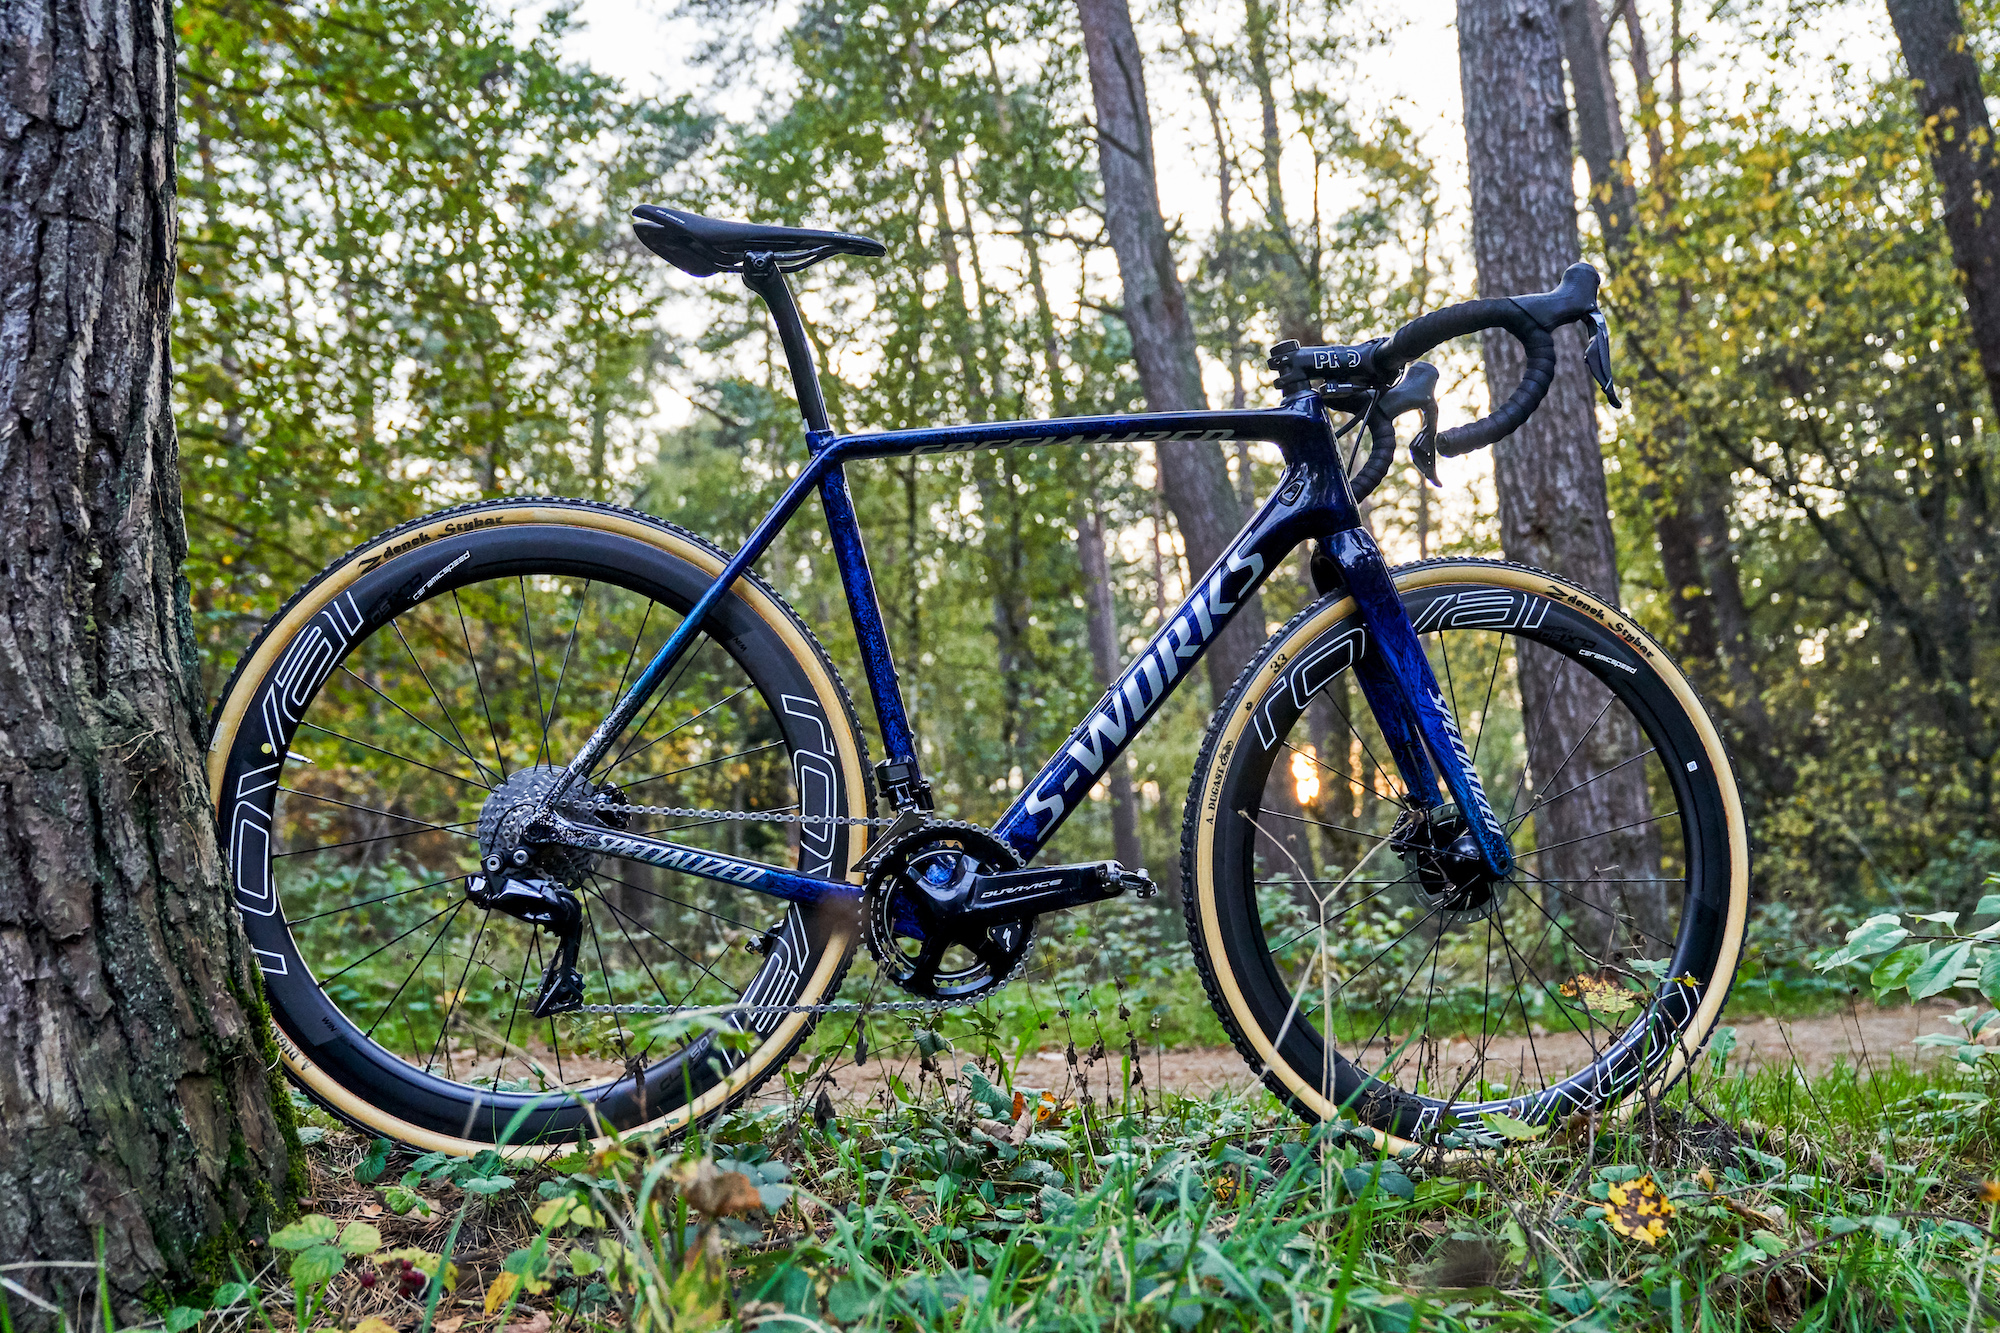 Check out Zdeněk Štybar's new custom S-Works Crux as he prepares for cyclocross return